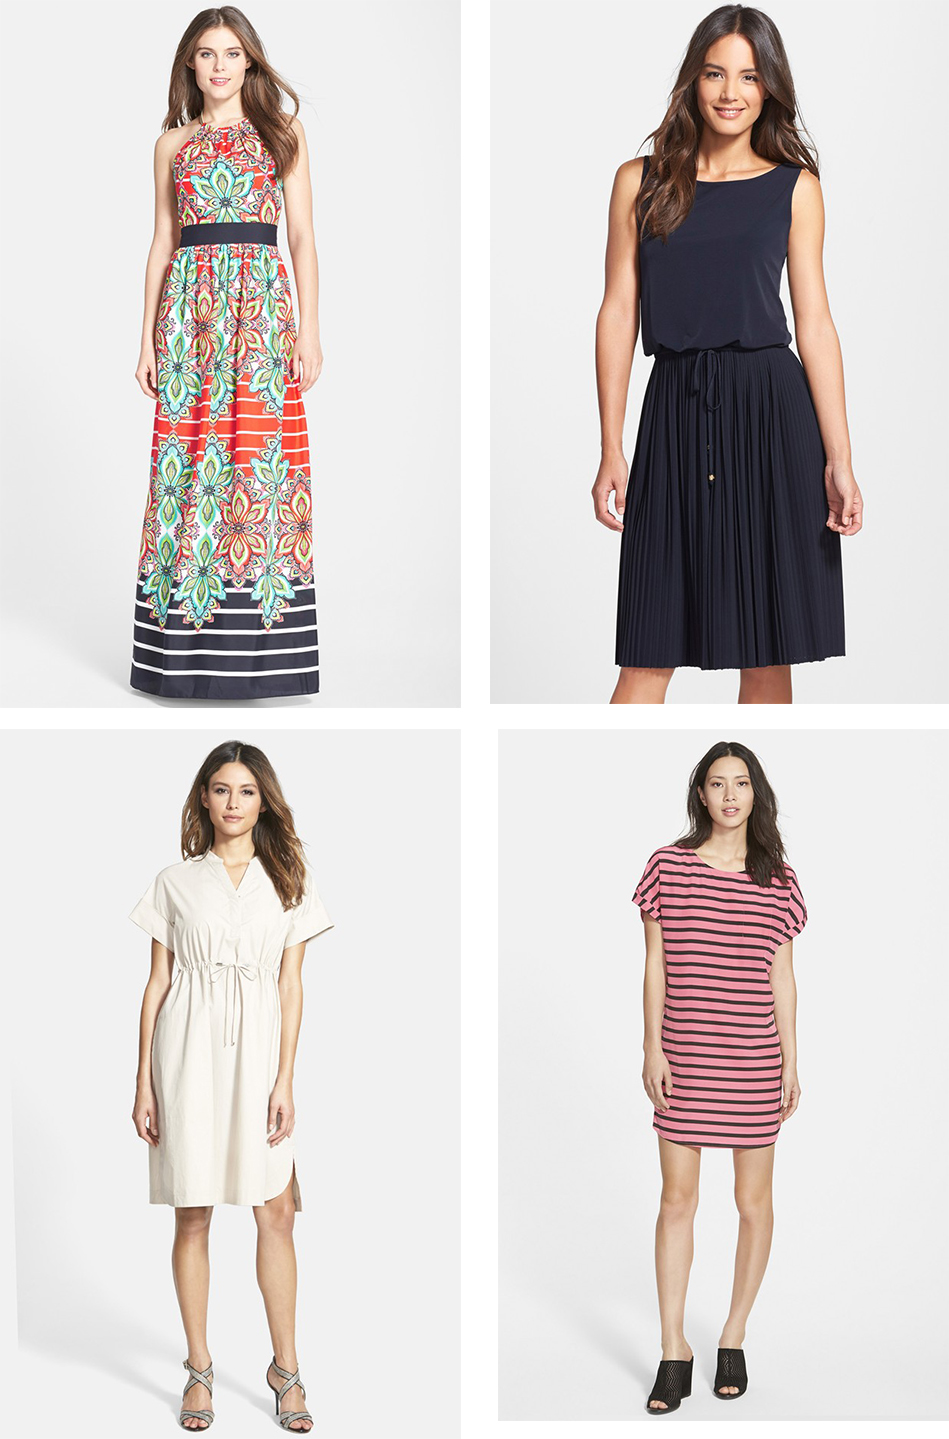 Sale dresses from Nordstrom